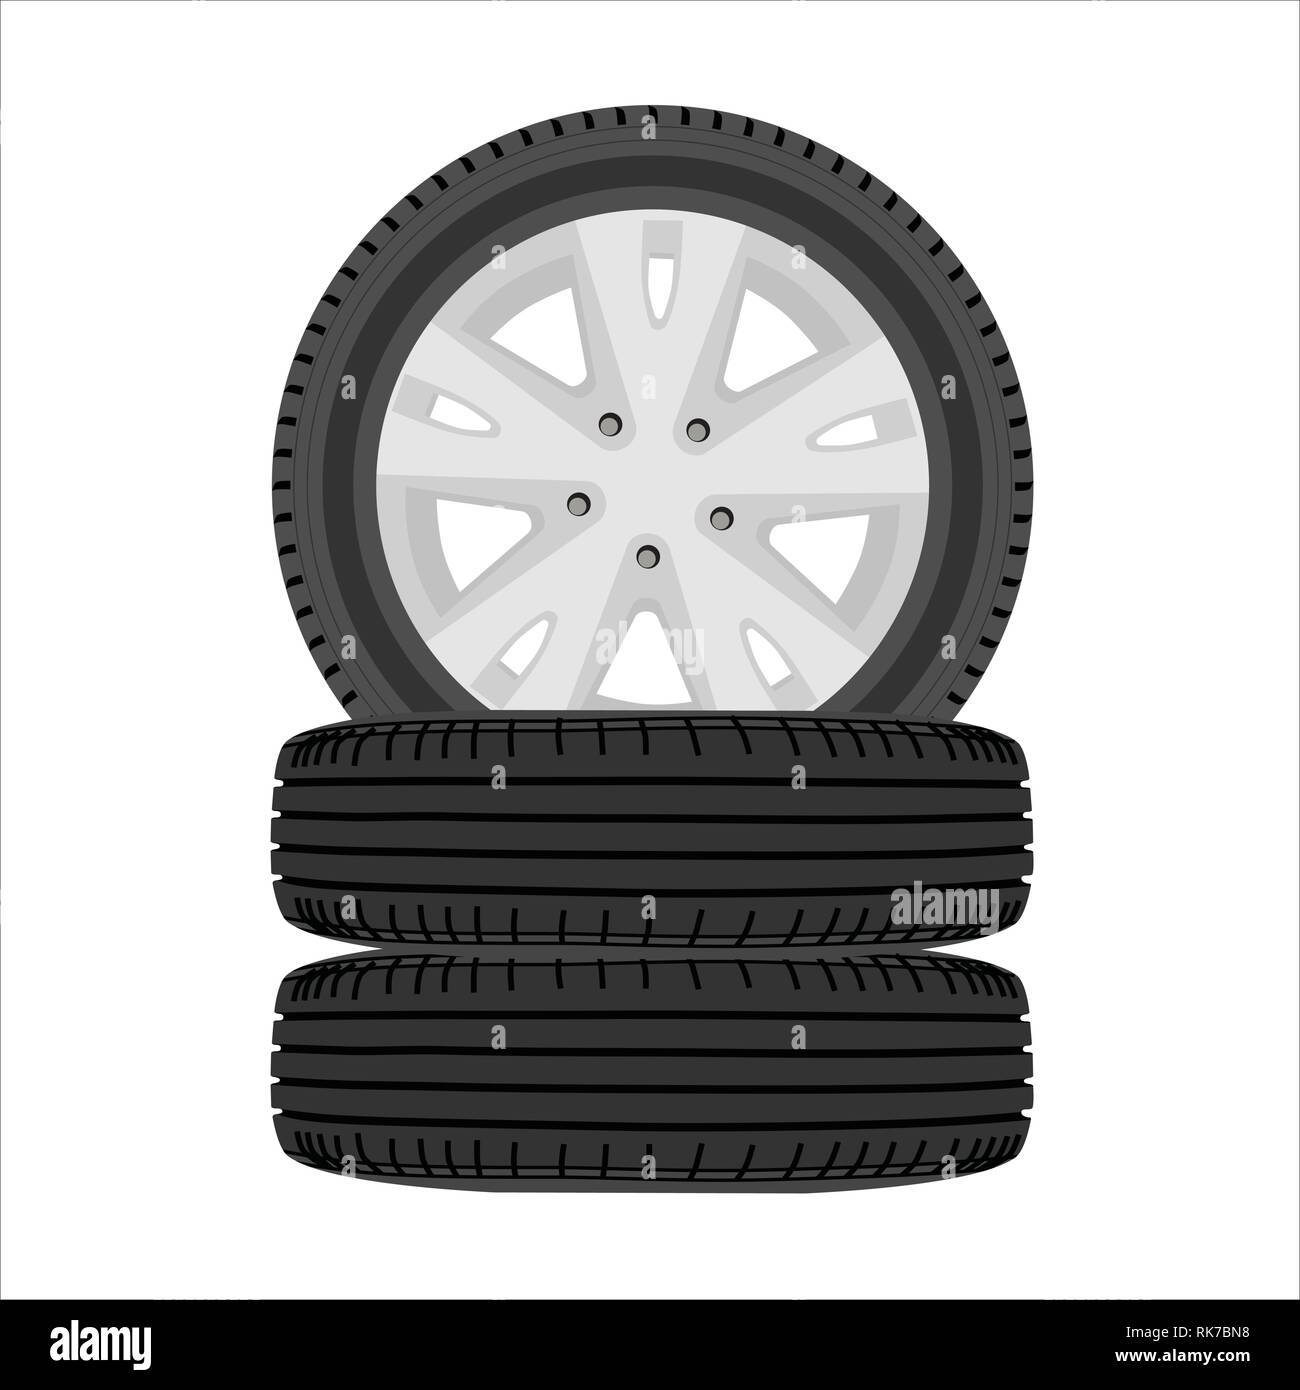 A stack of car tires. Car wheel set isolated on white - Stock Vector